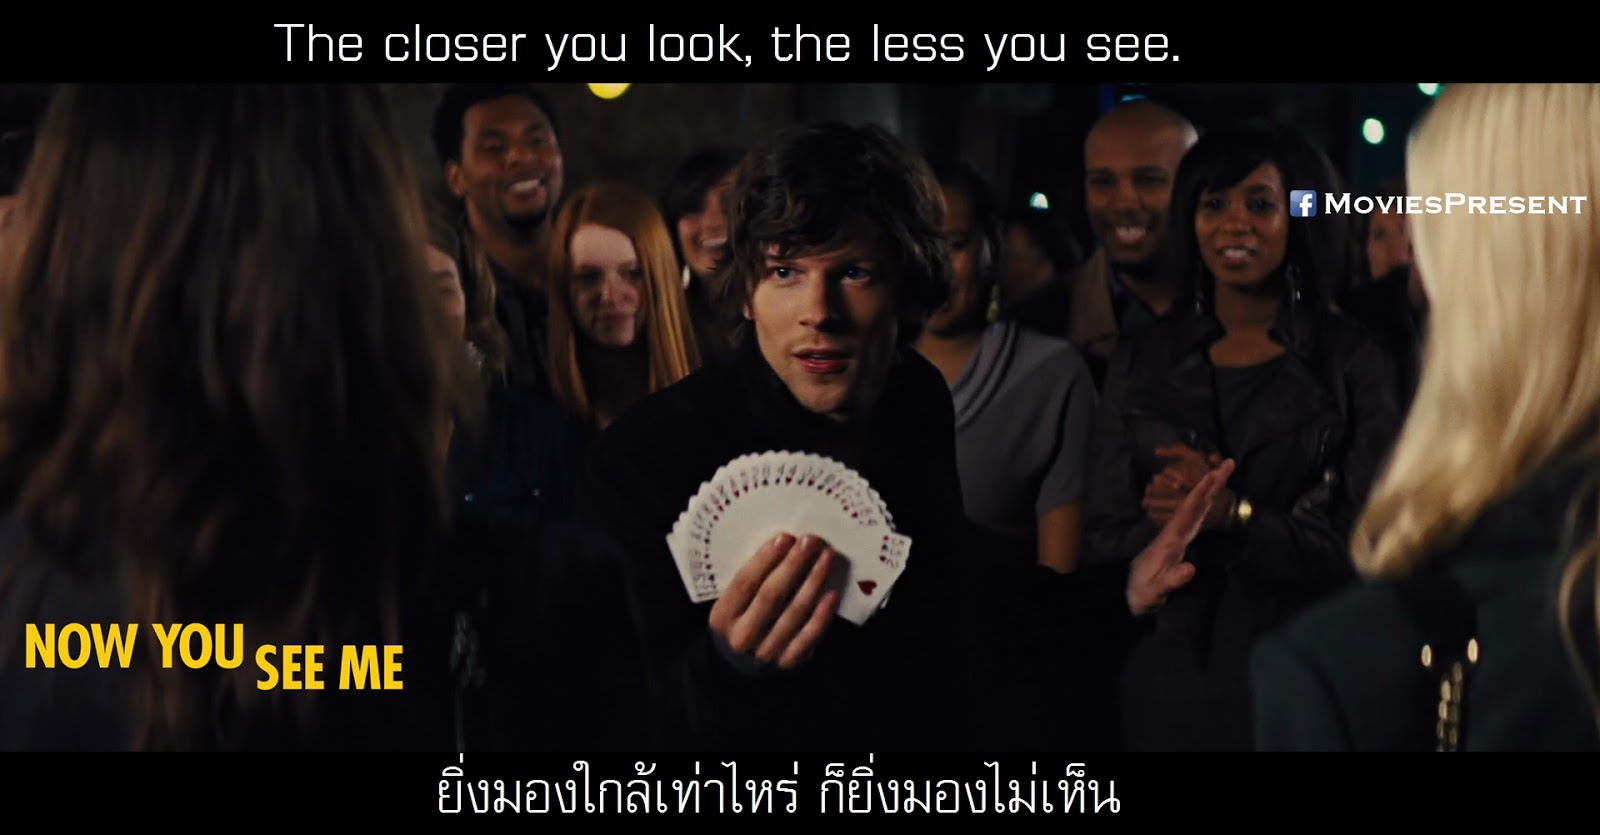 Now You See Me Quotes Beauteous Now You See Me Quotes Captivating Quotes Of Now You See Me